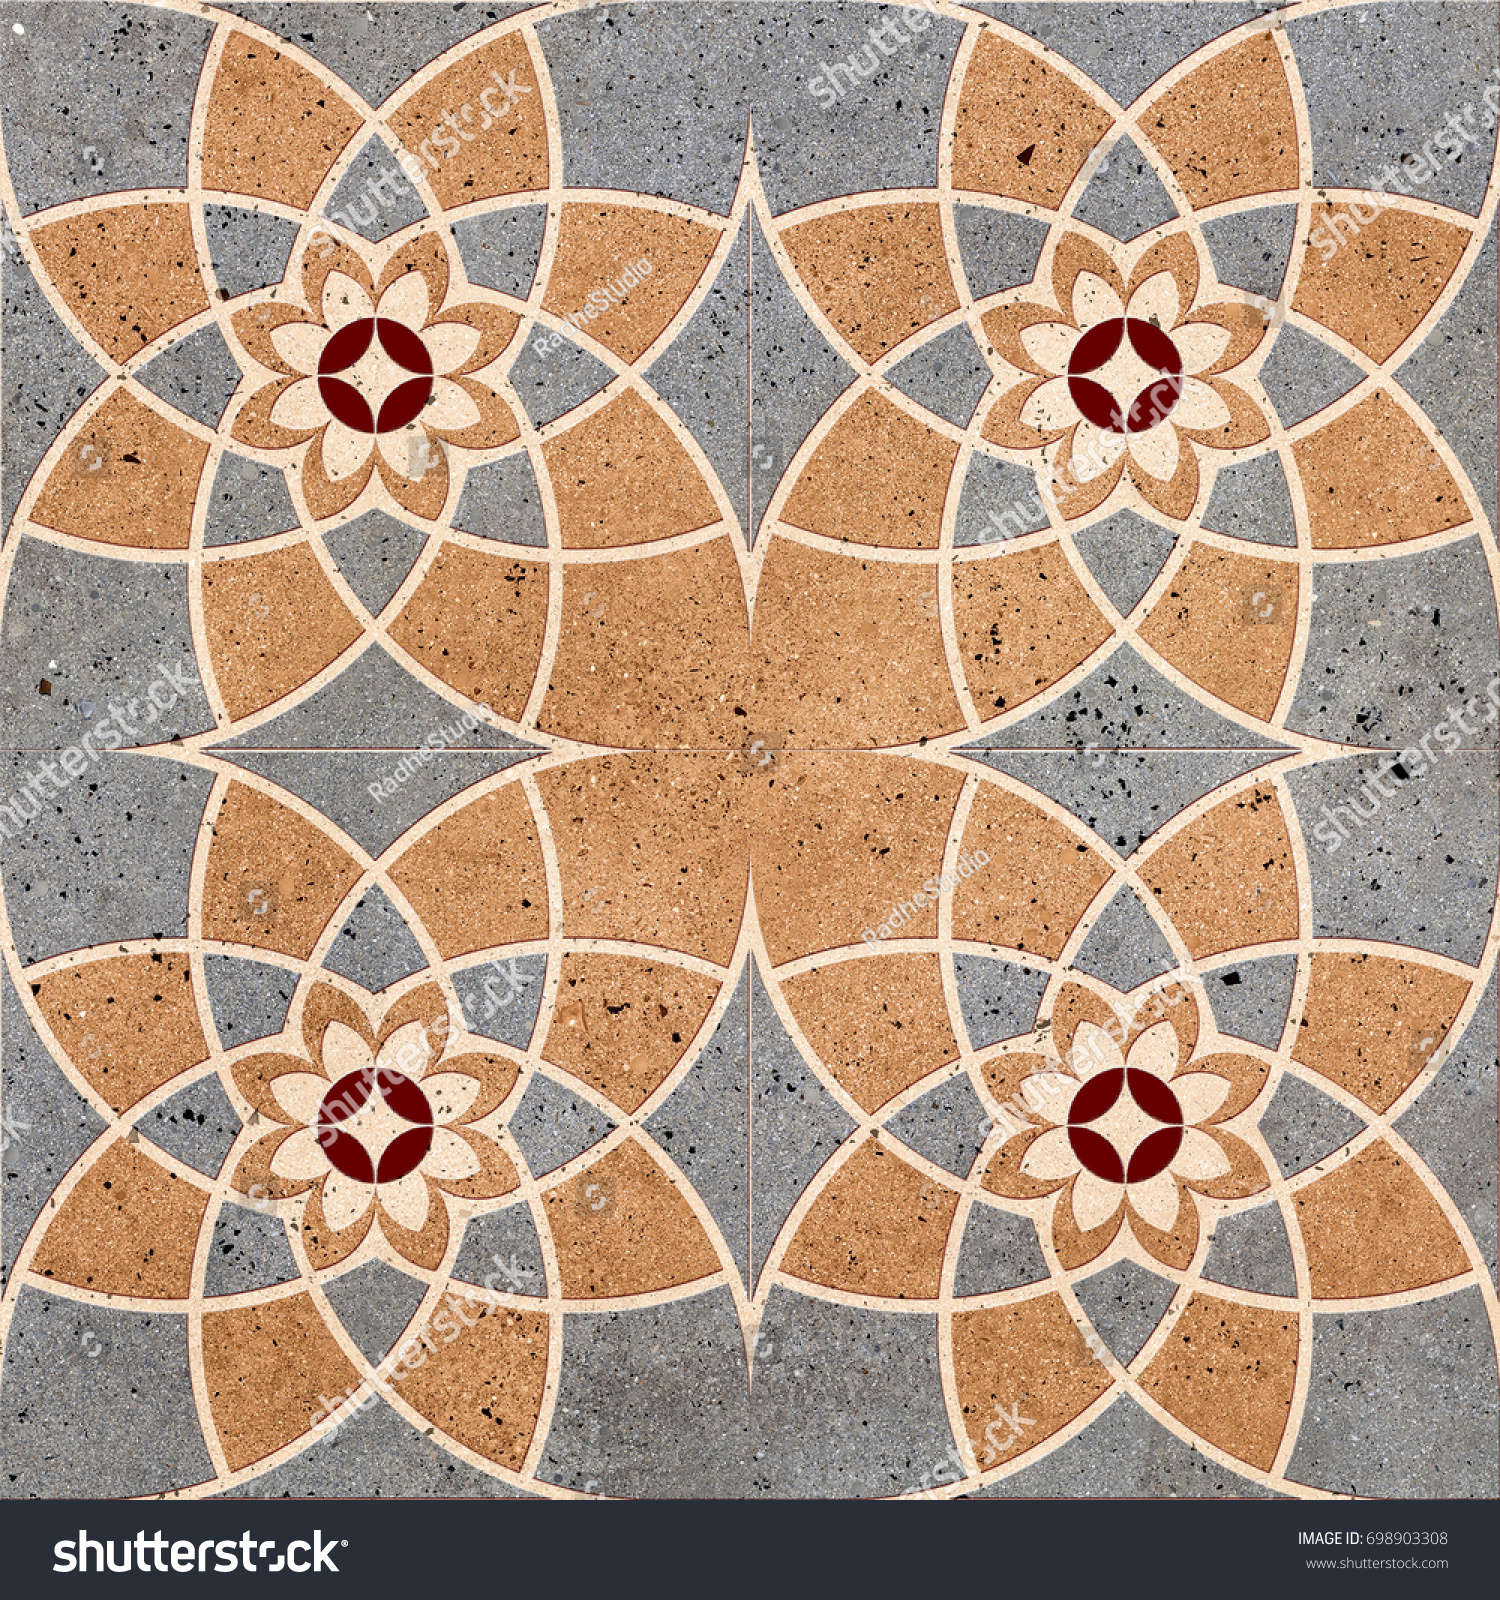 Porcelain ceramic tile image collections tile flooring design ideas floor tiles porcelain ceramic tile geometric stock illustration floor tiles porcelain ceramic tile geometric pattern for dailygadgetfo Gallery